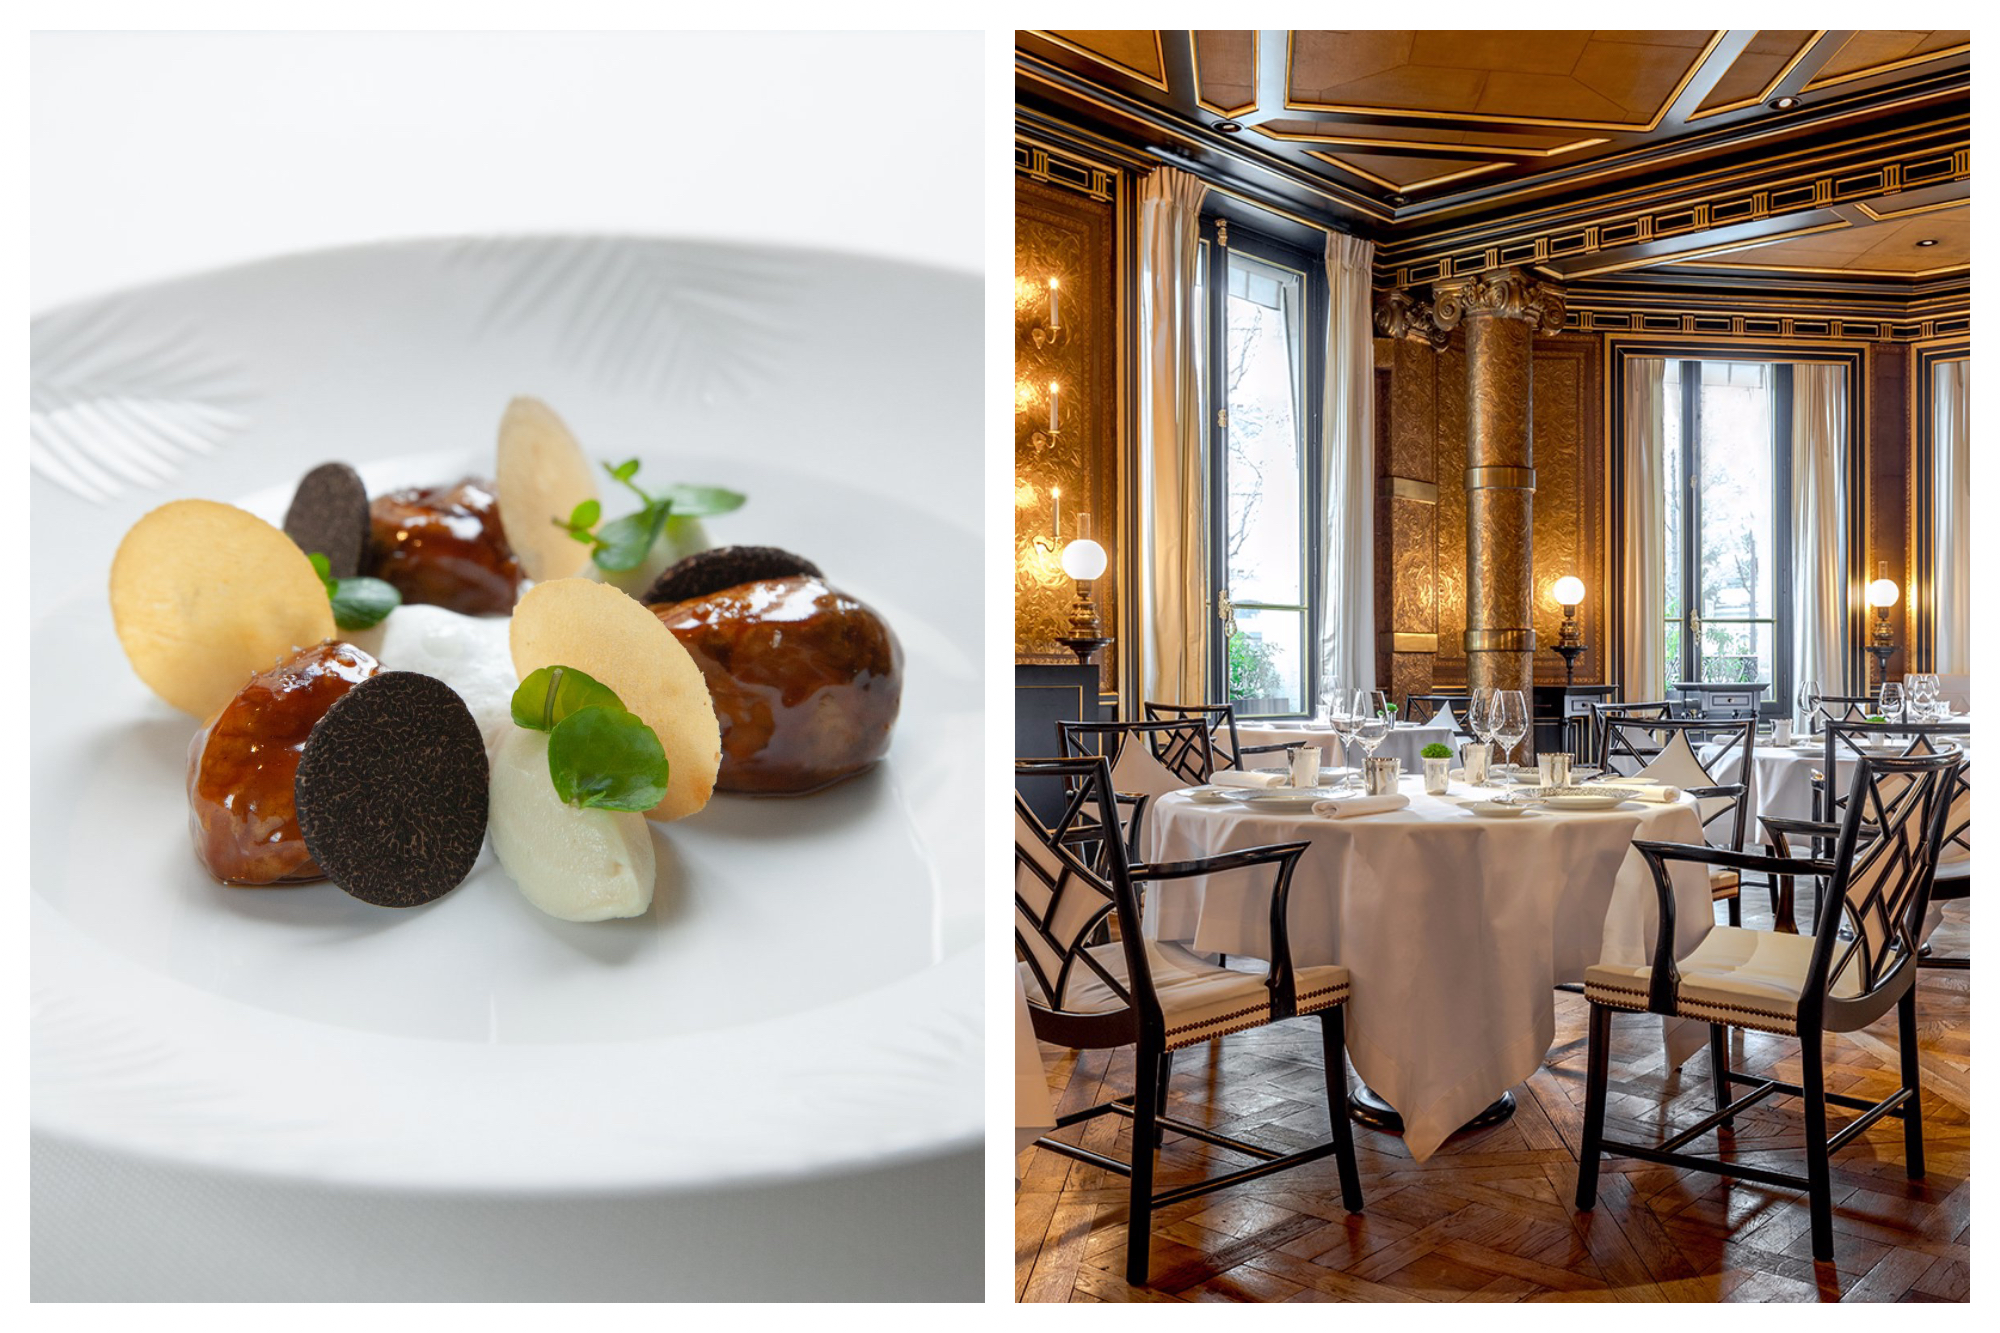 A plate of food from the restaurant Le Gabriel in Paris (left). The opulent interior of Le Gabriel, tables with white tablecloths, napkins and wine glasses, black and white Art Deco style chairs, in a room with gold walls and wood panelled roof in Art Deco style (right).